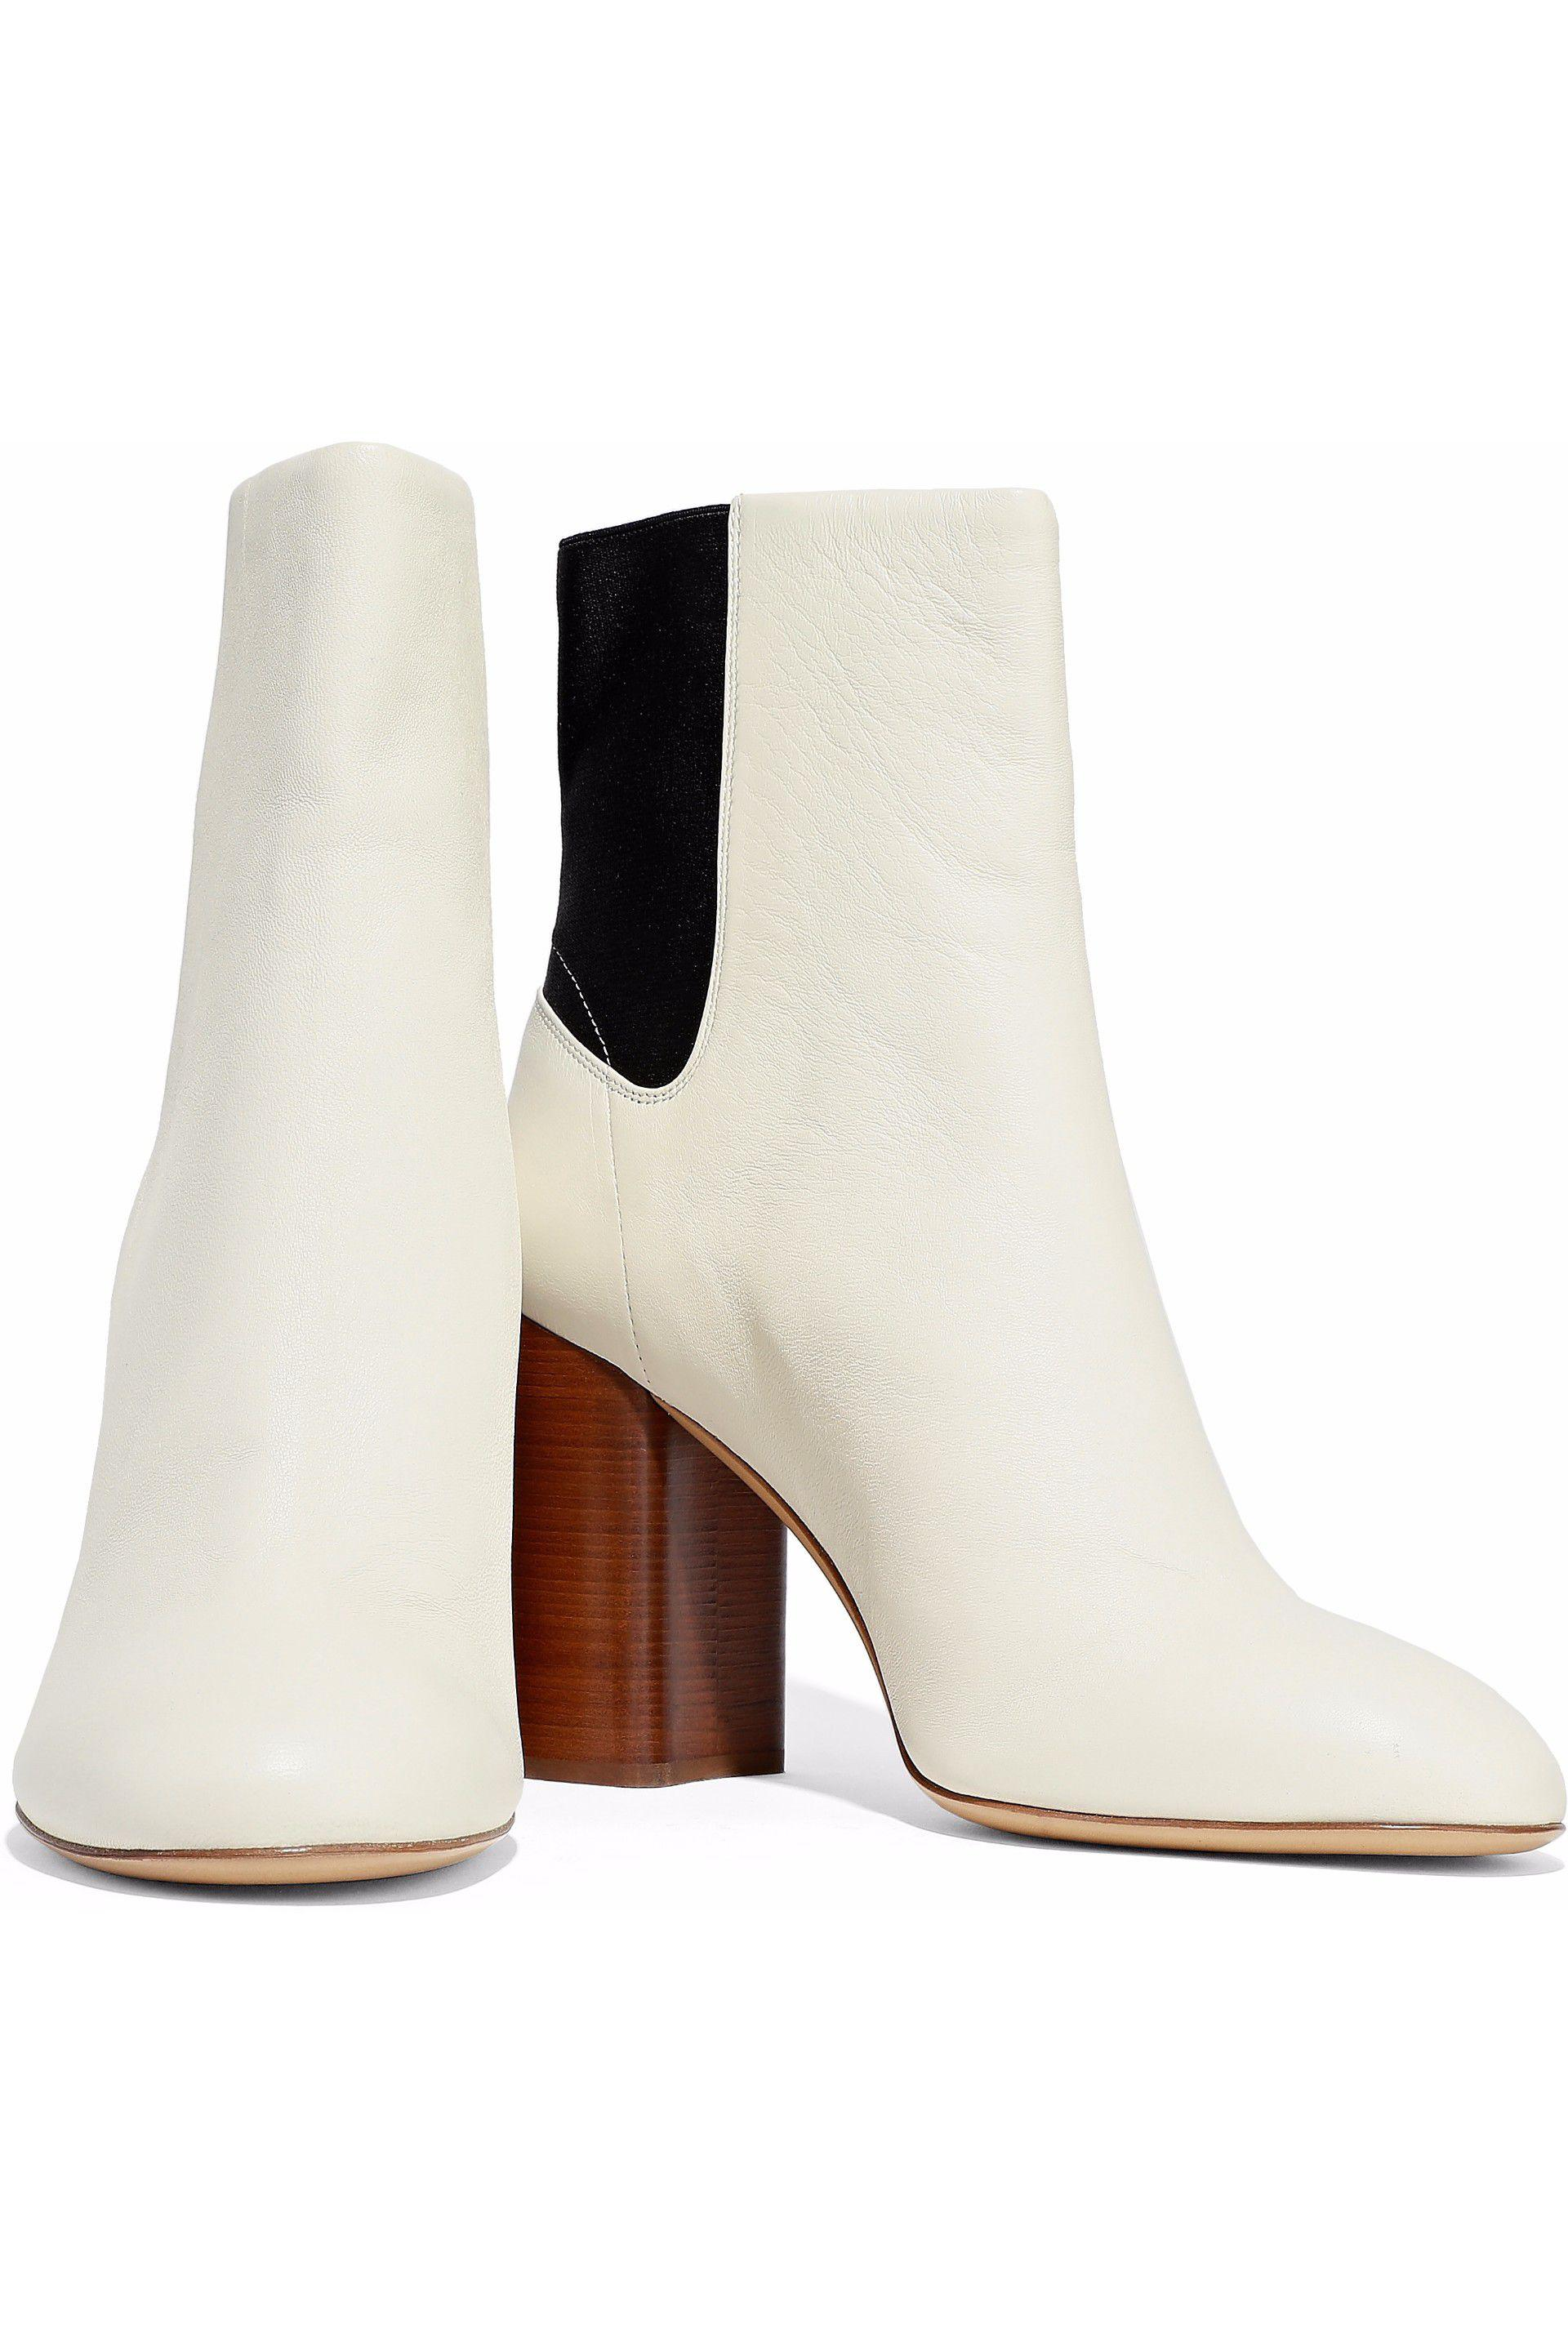 with paypal low price Rag & Bone Two-Tone Ankle Boots new AzMEp9LpM